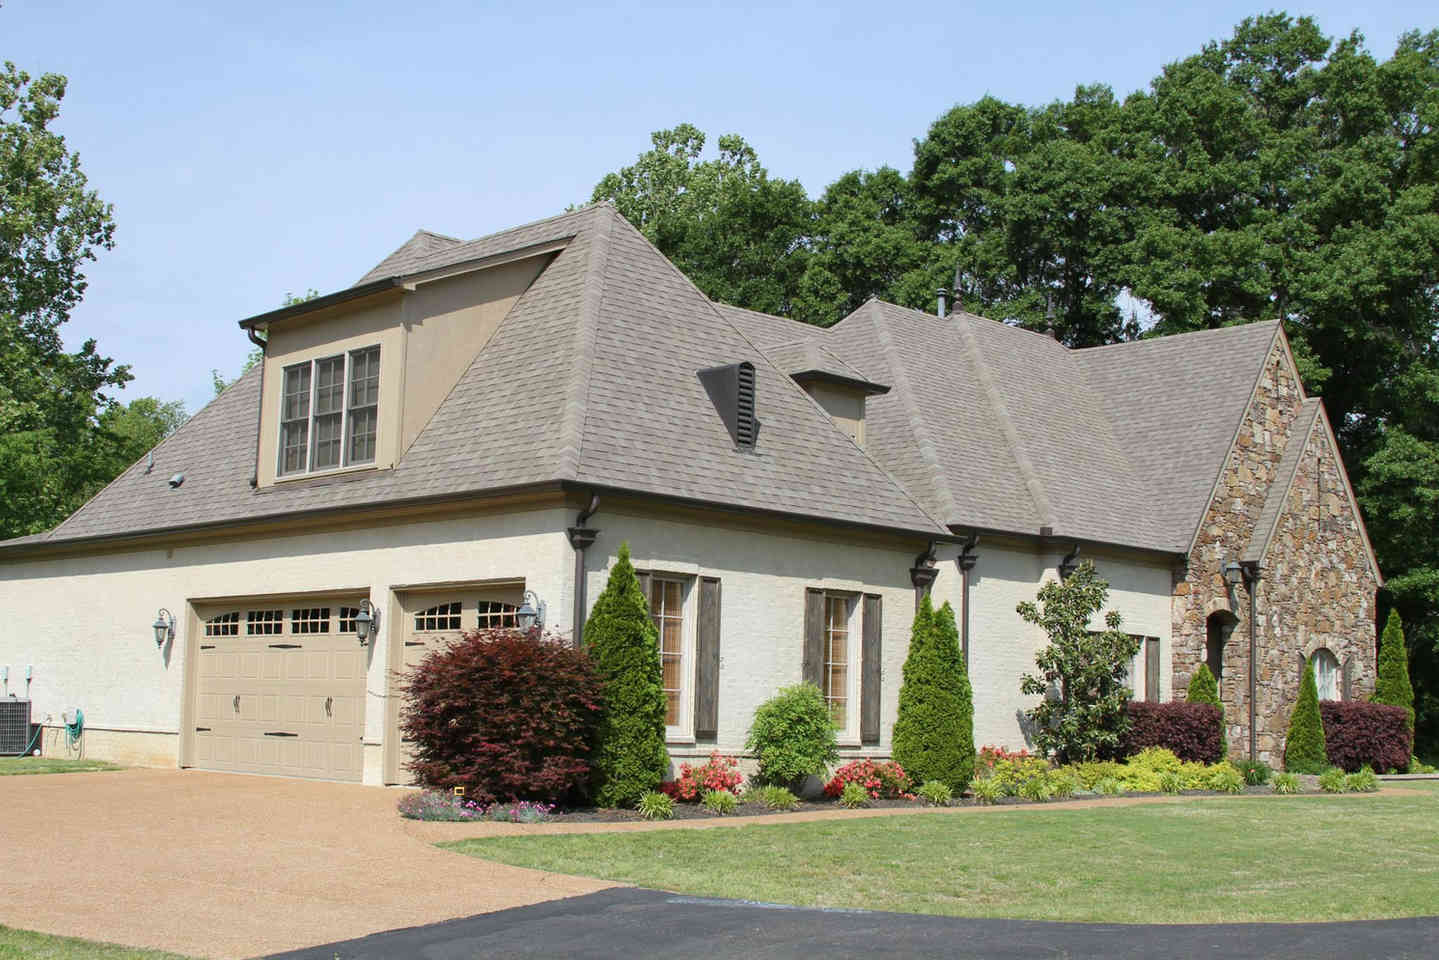 Collierville Exterior Painting